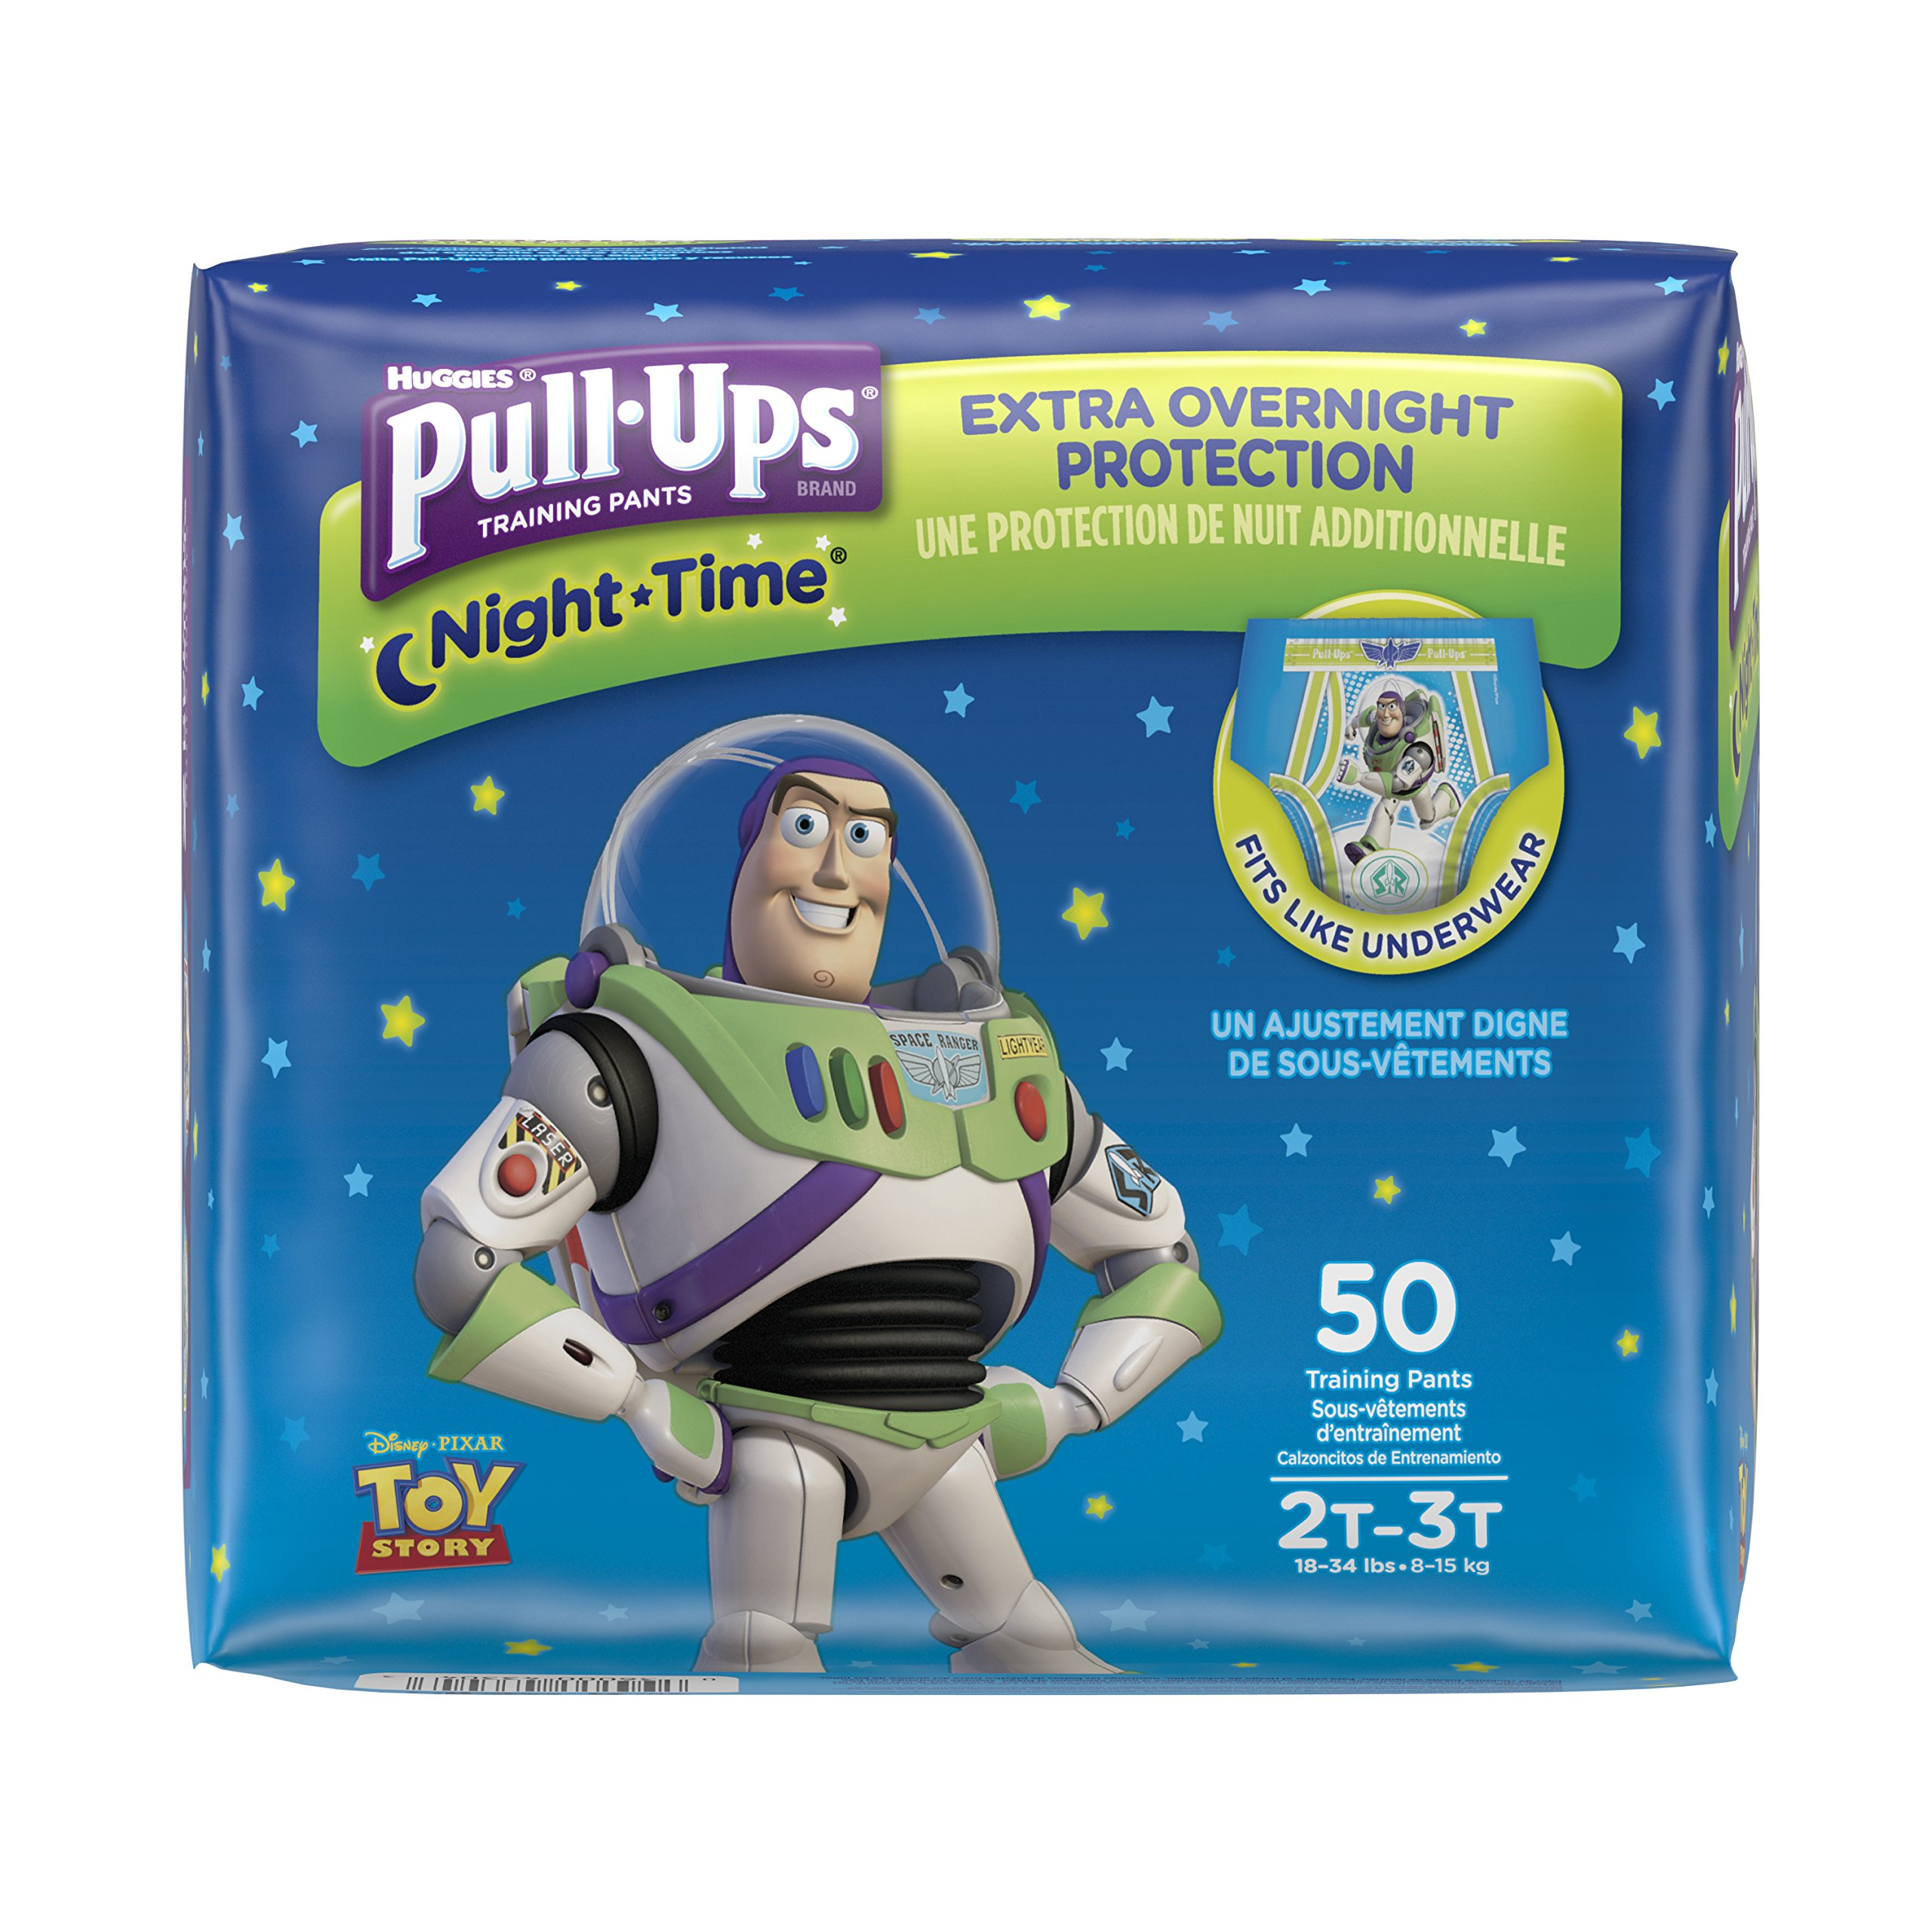 Pull-Ups Night-Time, 2T-3T (18-34 lb.), 50 Ct. (Pack of 2), Potty Training Pants for Boys, Disposable Potty Training Pants for Toddler Boys (Packaging May Vary)